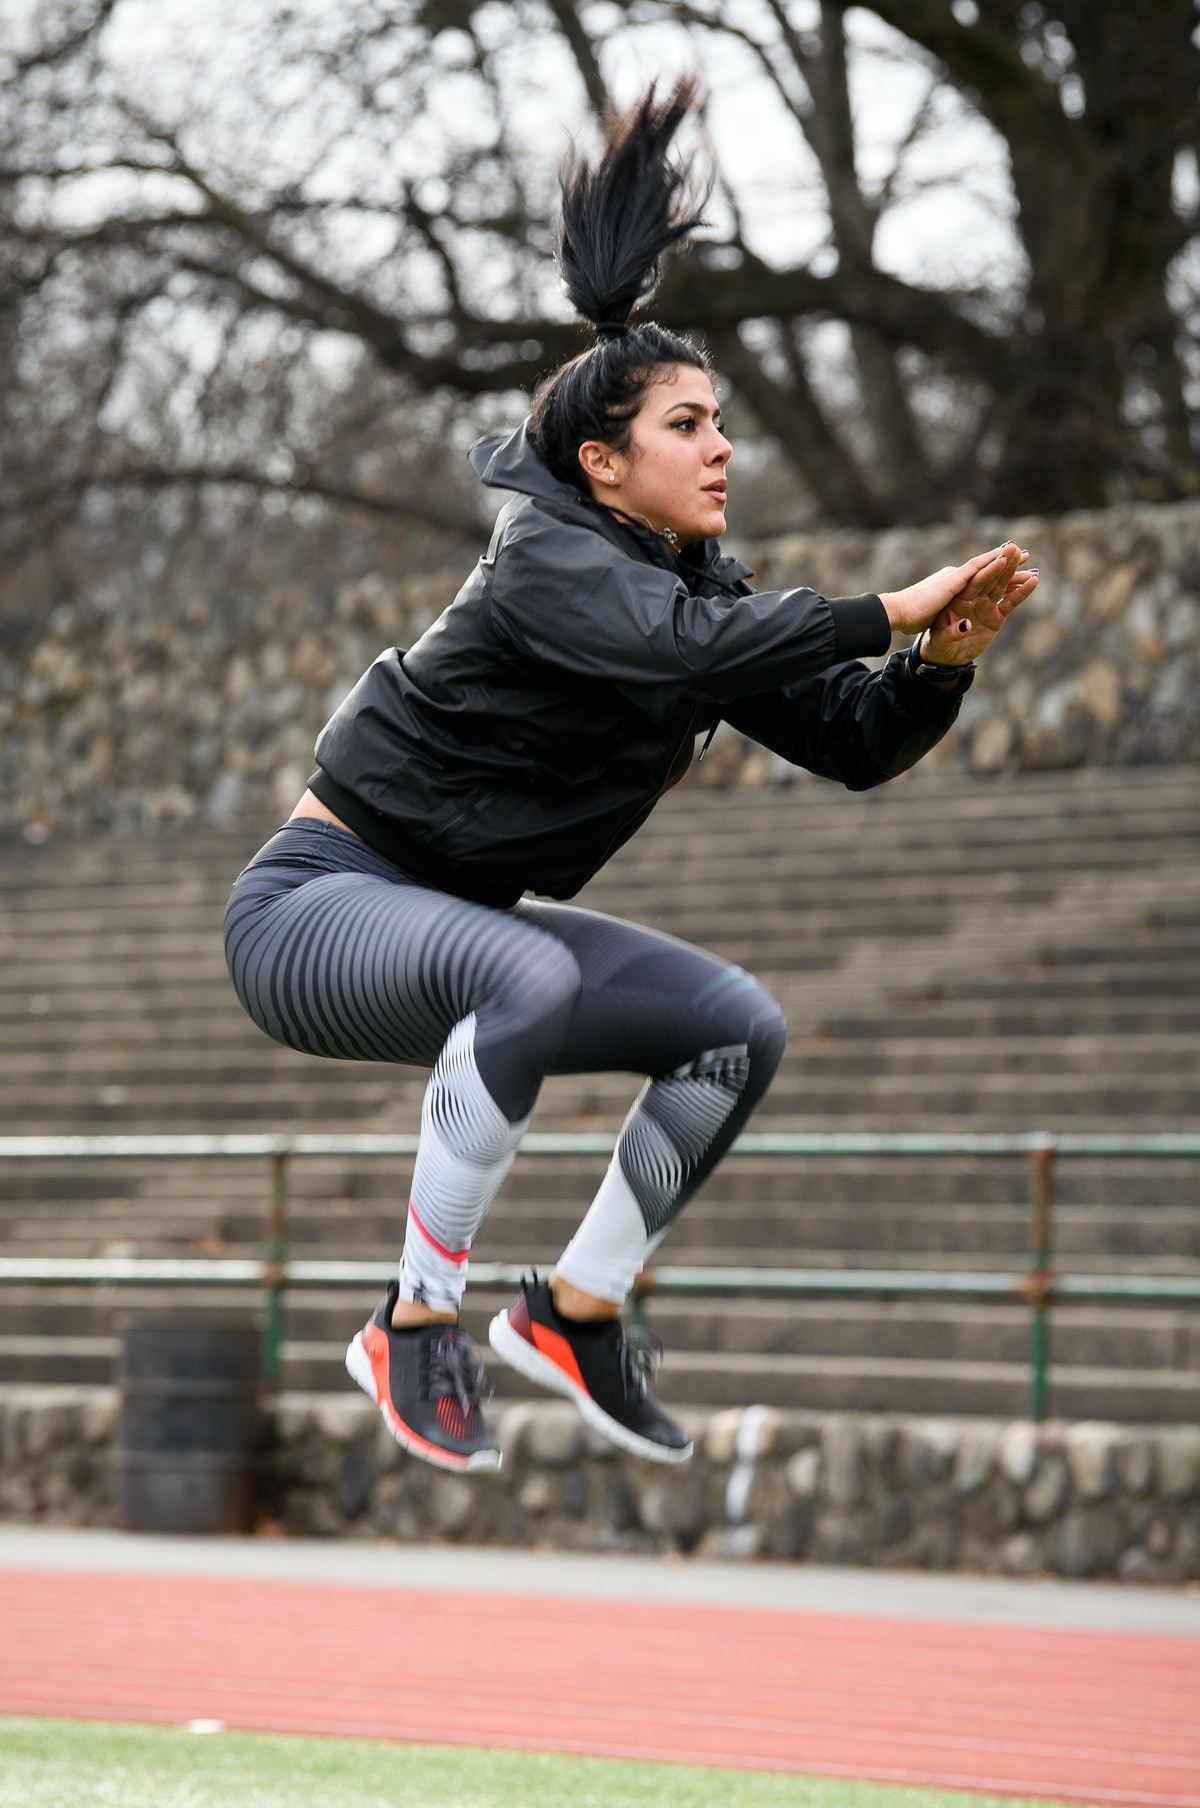 Exercises like tuck jumps and burpees are plyometric training.